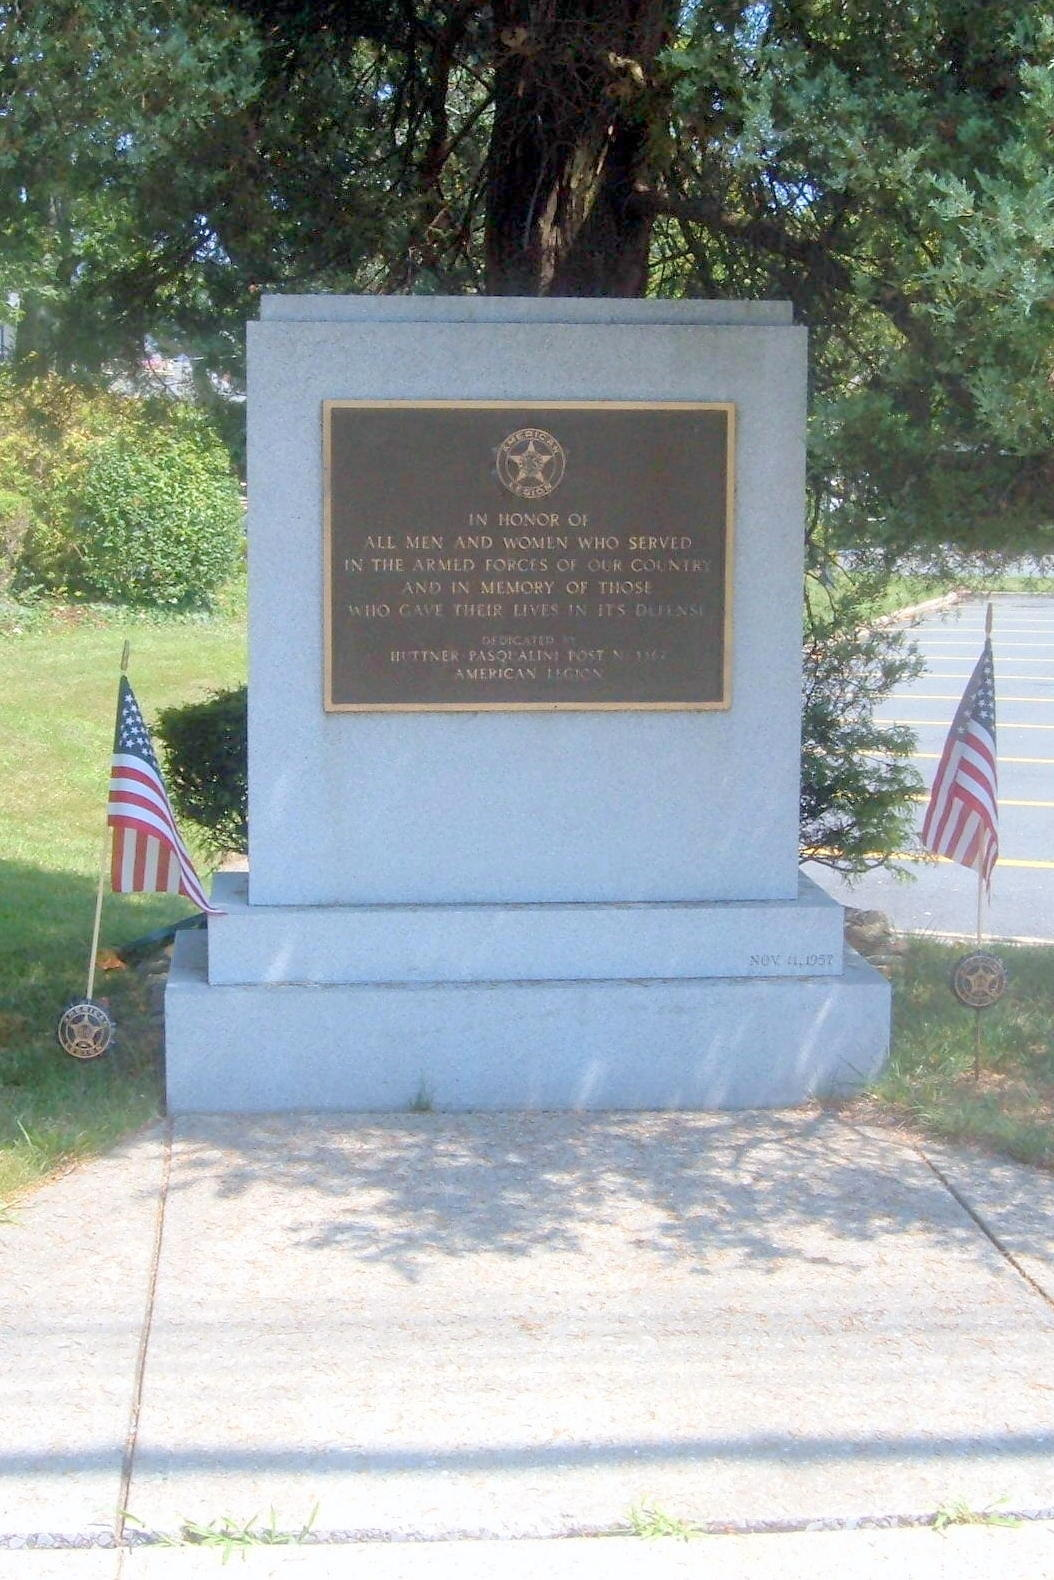 Huttner-Pasqualini Post, American Legion Memorial